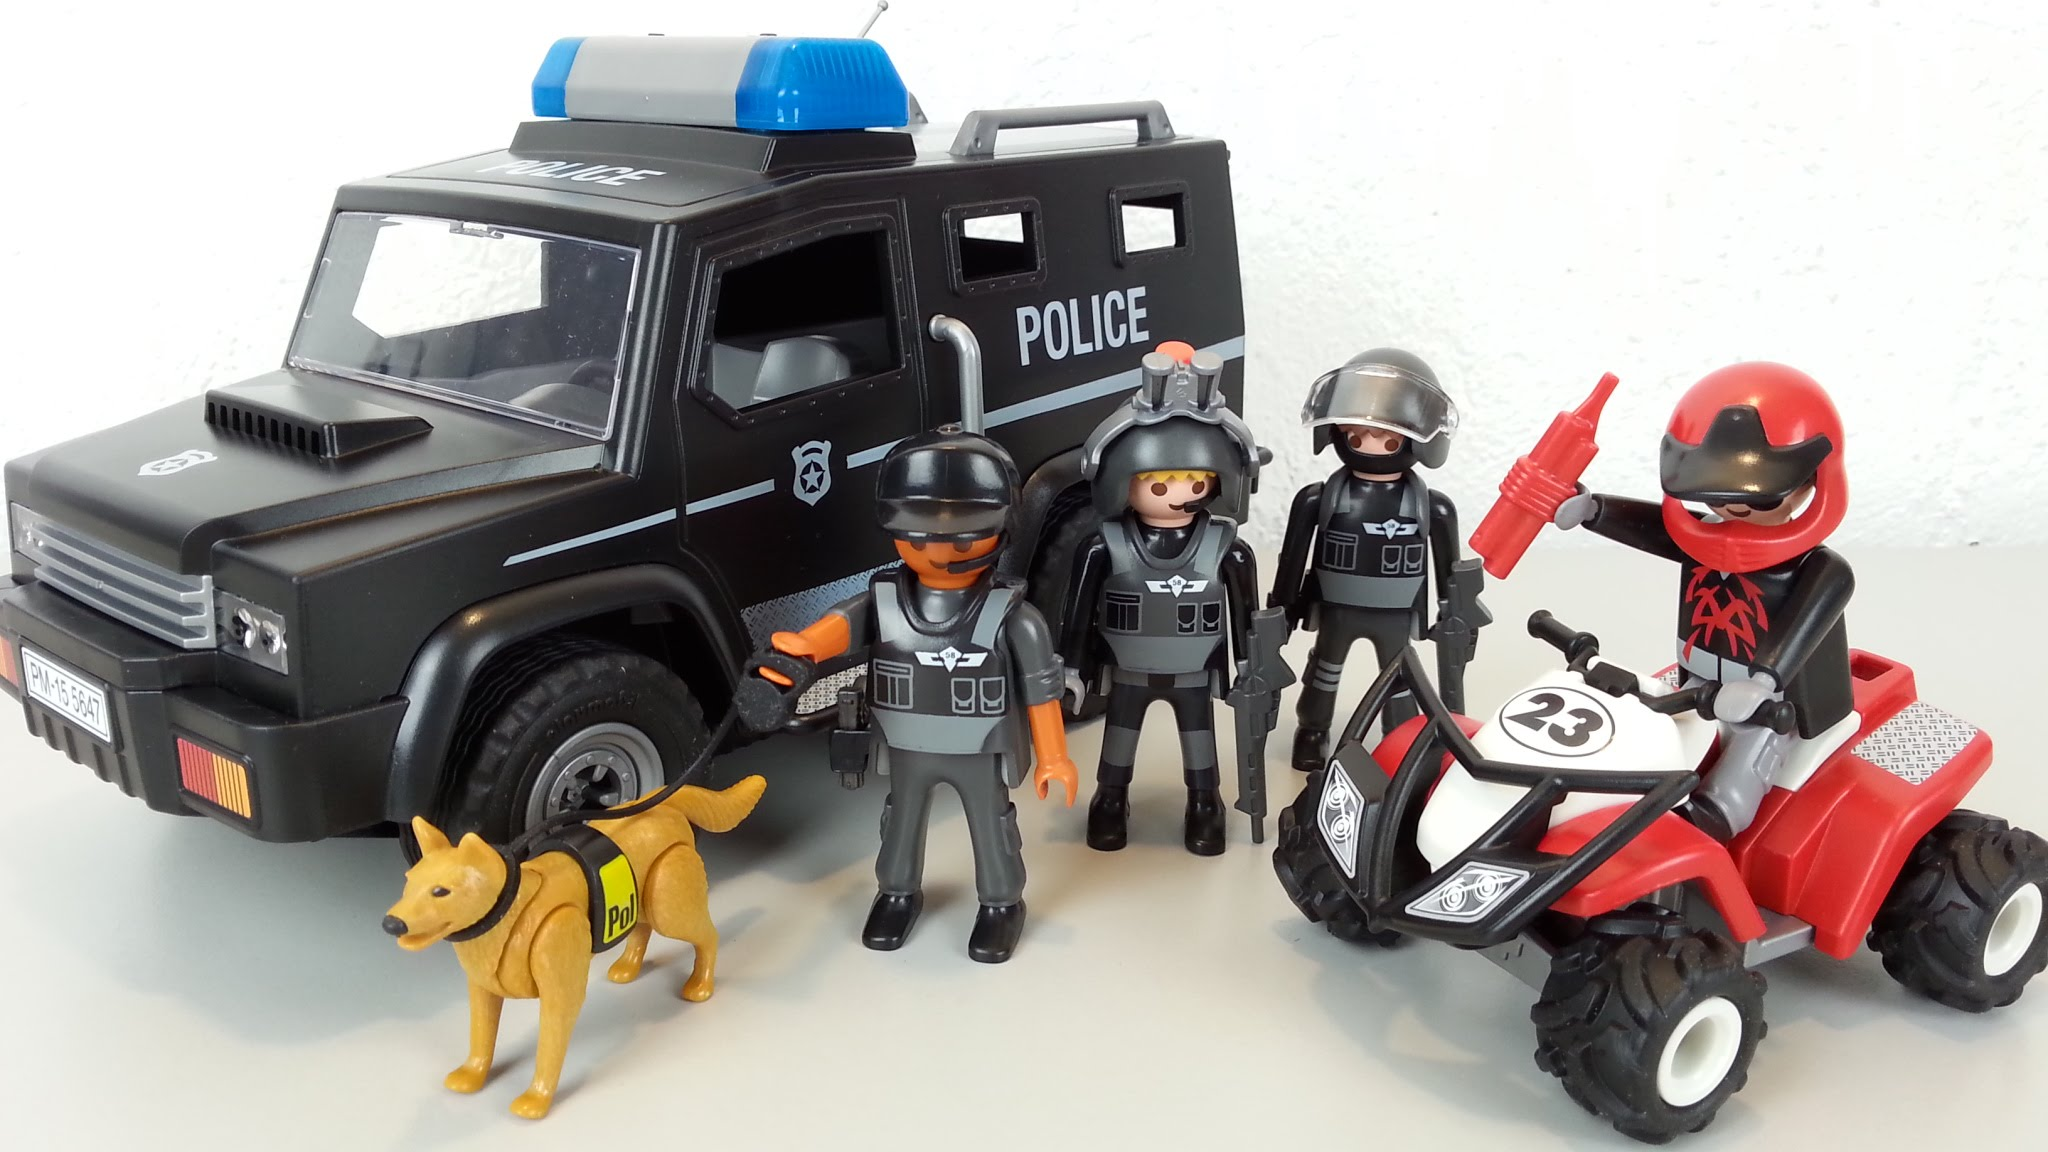 Fourgon de police forces spéciales Playmobil 5647 photo Youtube Seratus 1 unboxing